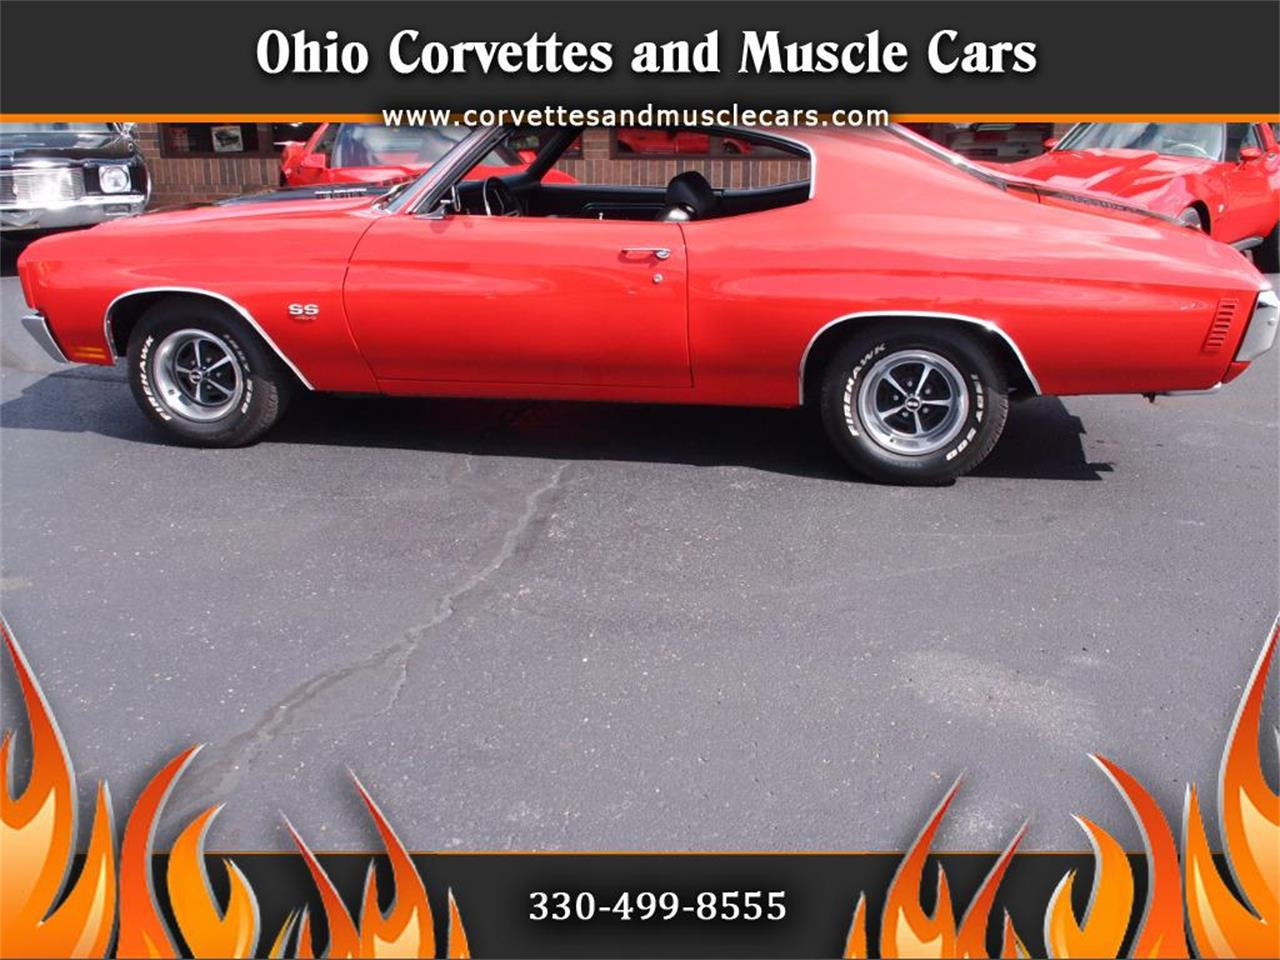 Large Picture of Classic 1970 Chevelle - $49,500.00 Offered by Ohio Corvettes and Muscle Cars - KYUY